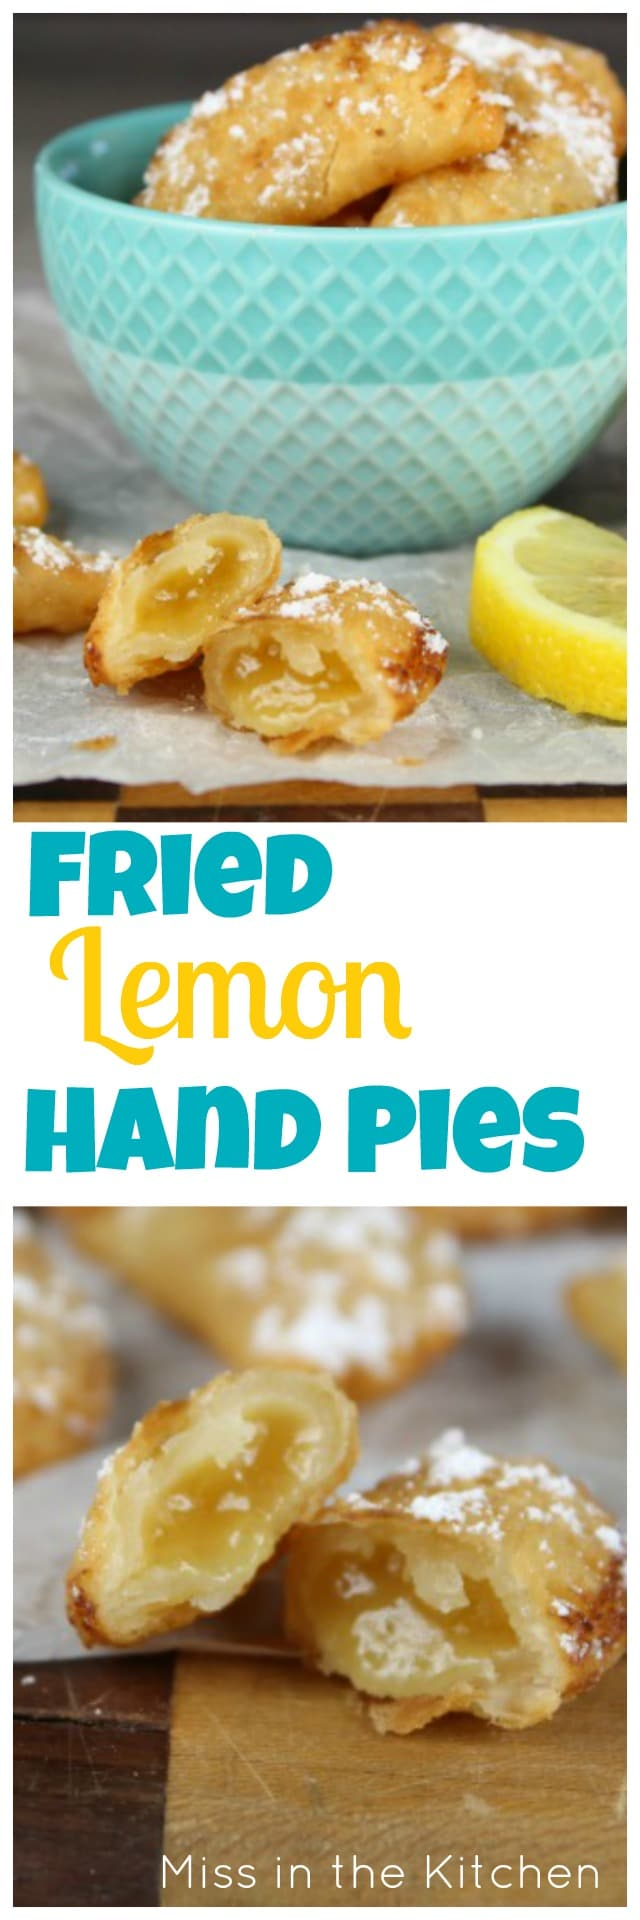 Fried Lemon Hand Pies Recipe for the easiest bite- sized dessert ever! From MissintheKitchen.com